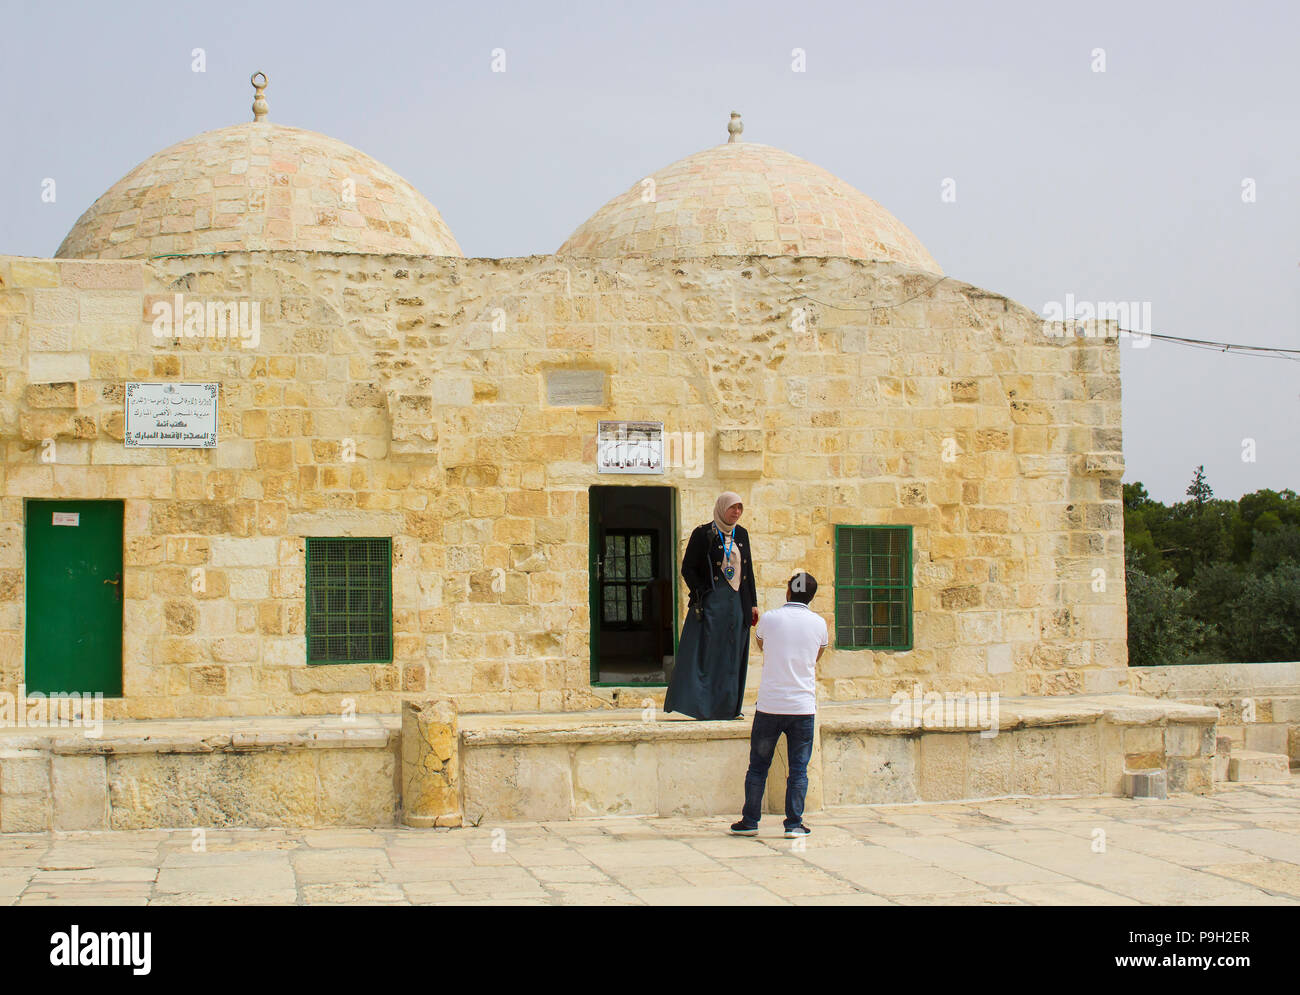 Some of the Domed Buildings on the Temple Mount Jerusalem Israel. The place of the Dome of The Rock Islamic Mosque - Stock Image